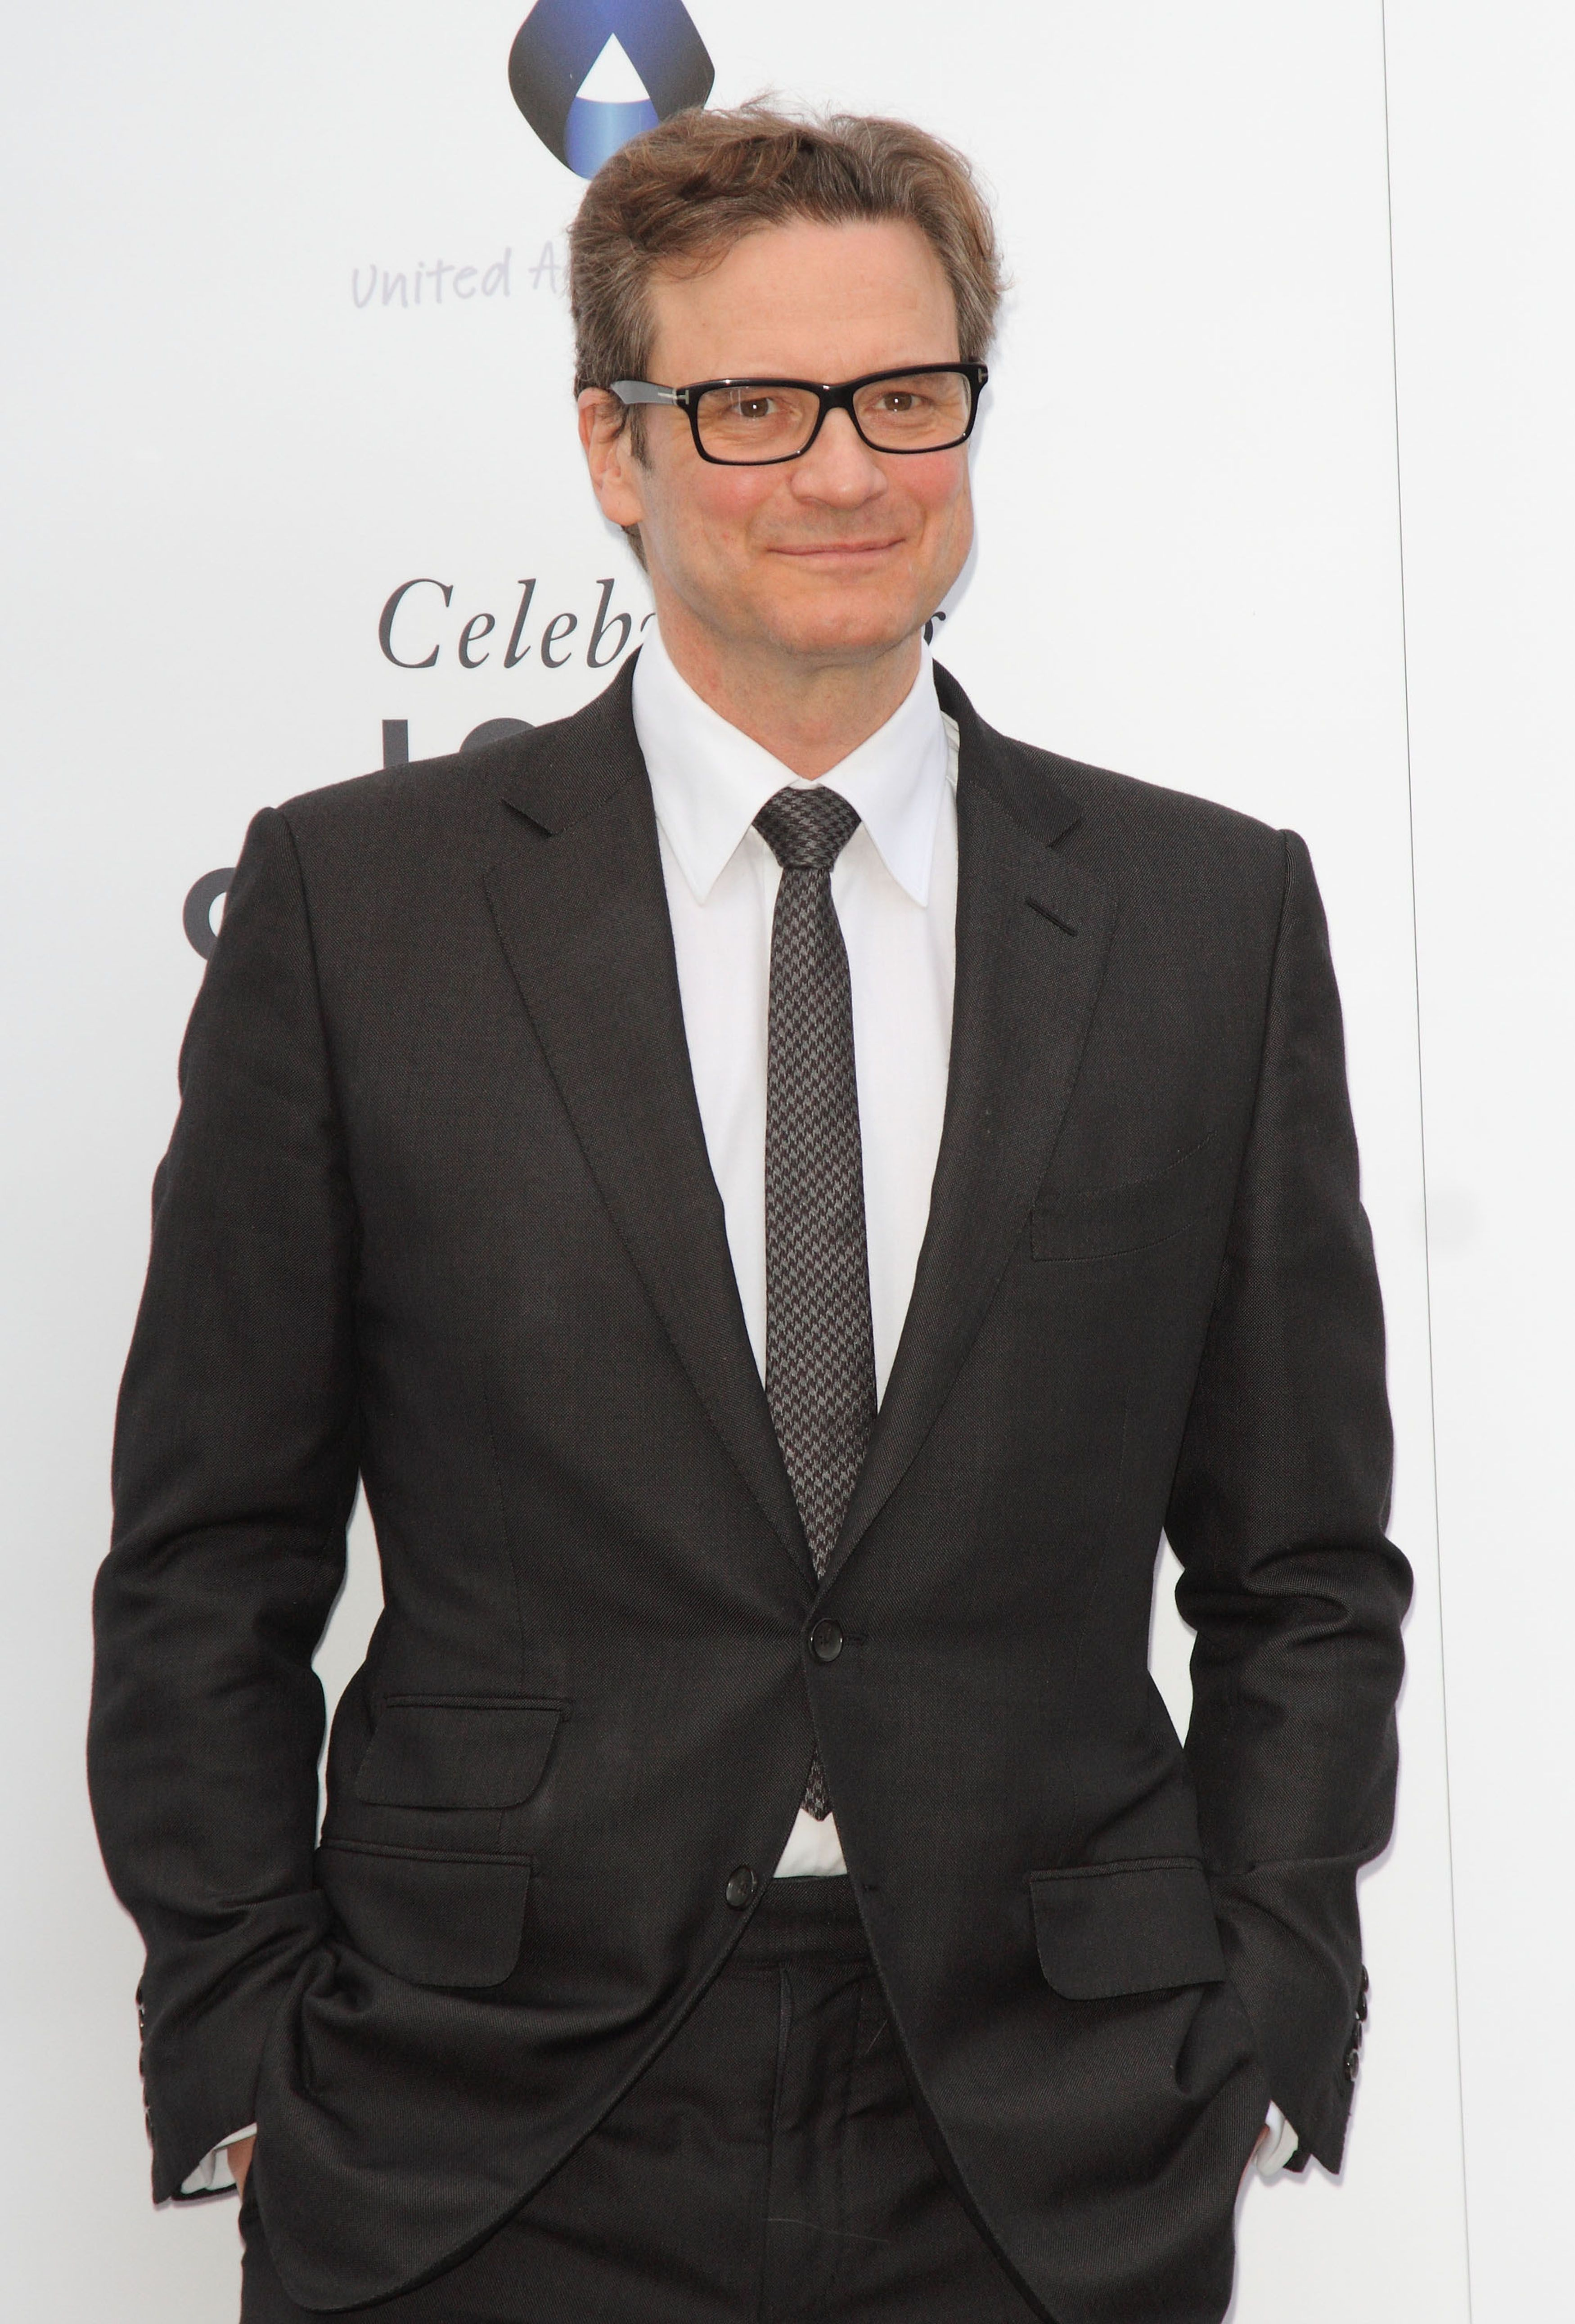 colin firth 2014   Colin Firth - One For The Boys Charity Ball: Arrivals